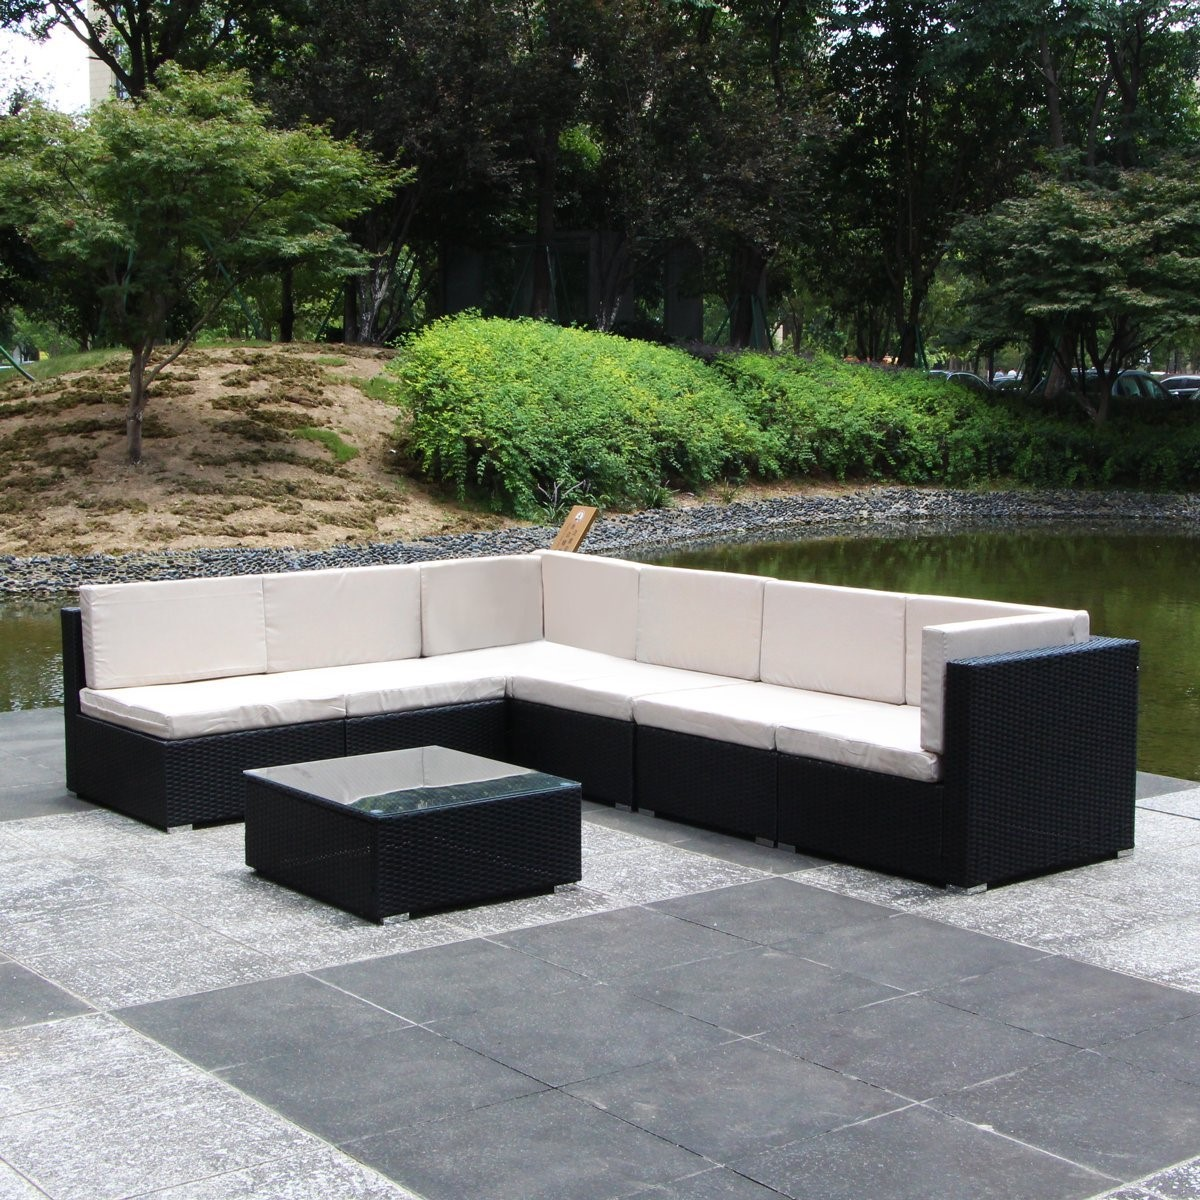 U-Max Patio Furniture